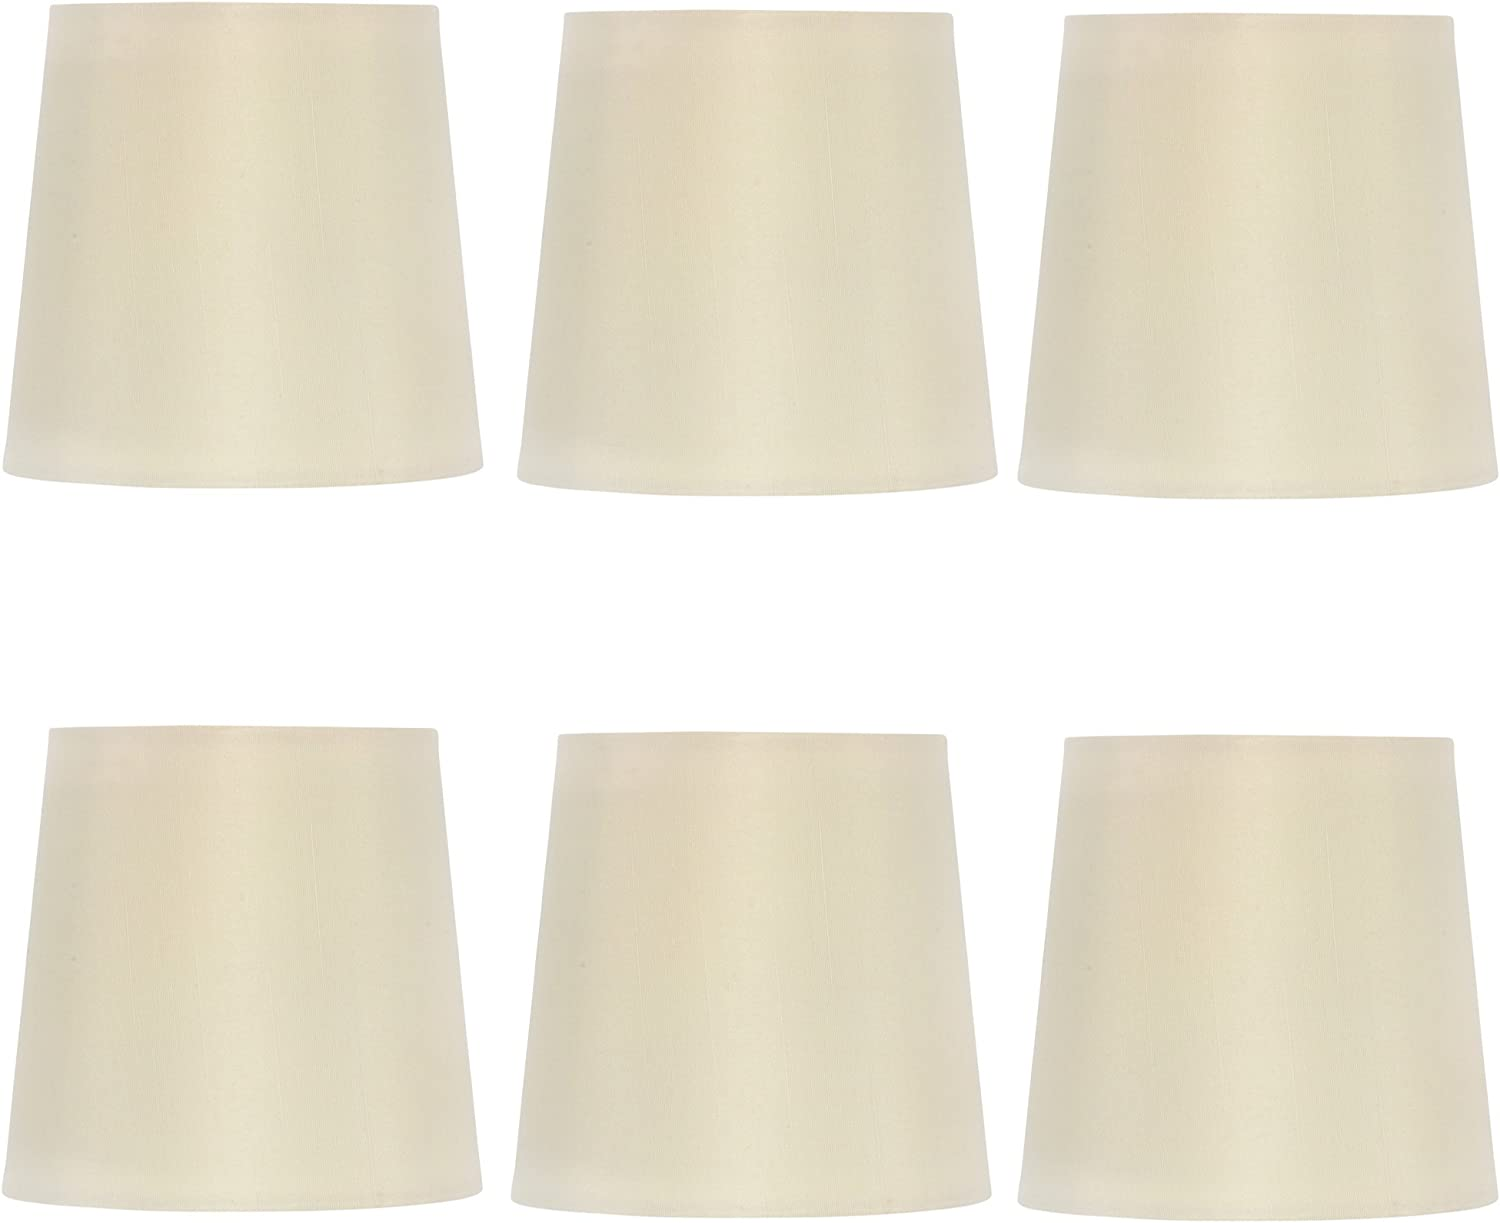 Upgradelights Mesa Mall 4 Inch Empire Clip Max 89% OFF Chandelier on Lampshade Replace